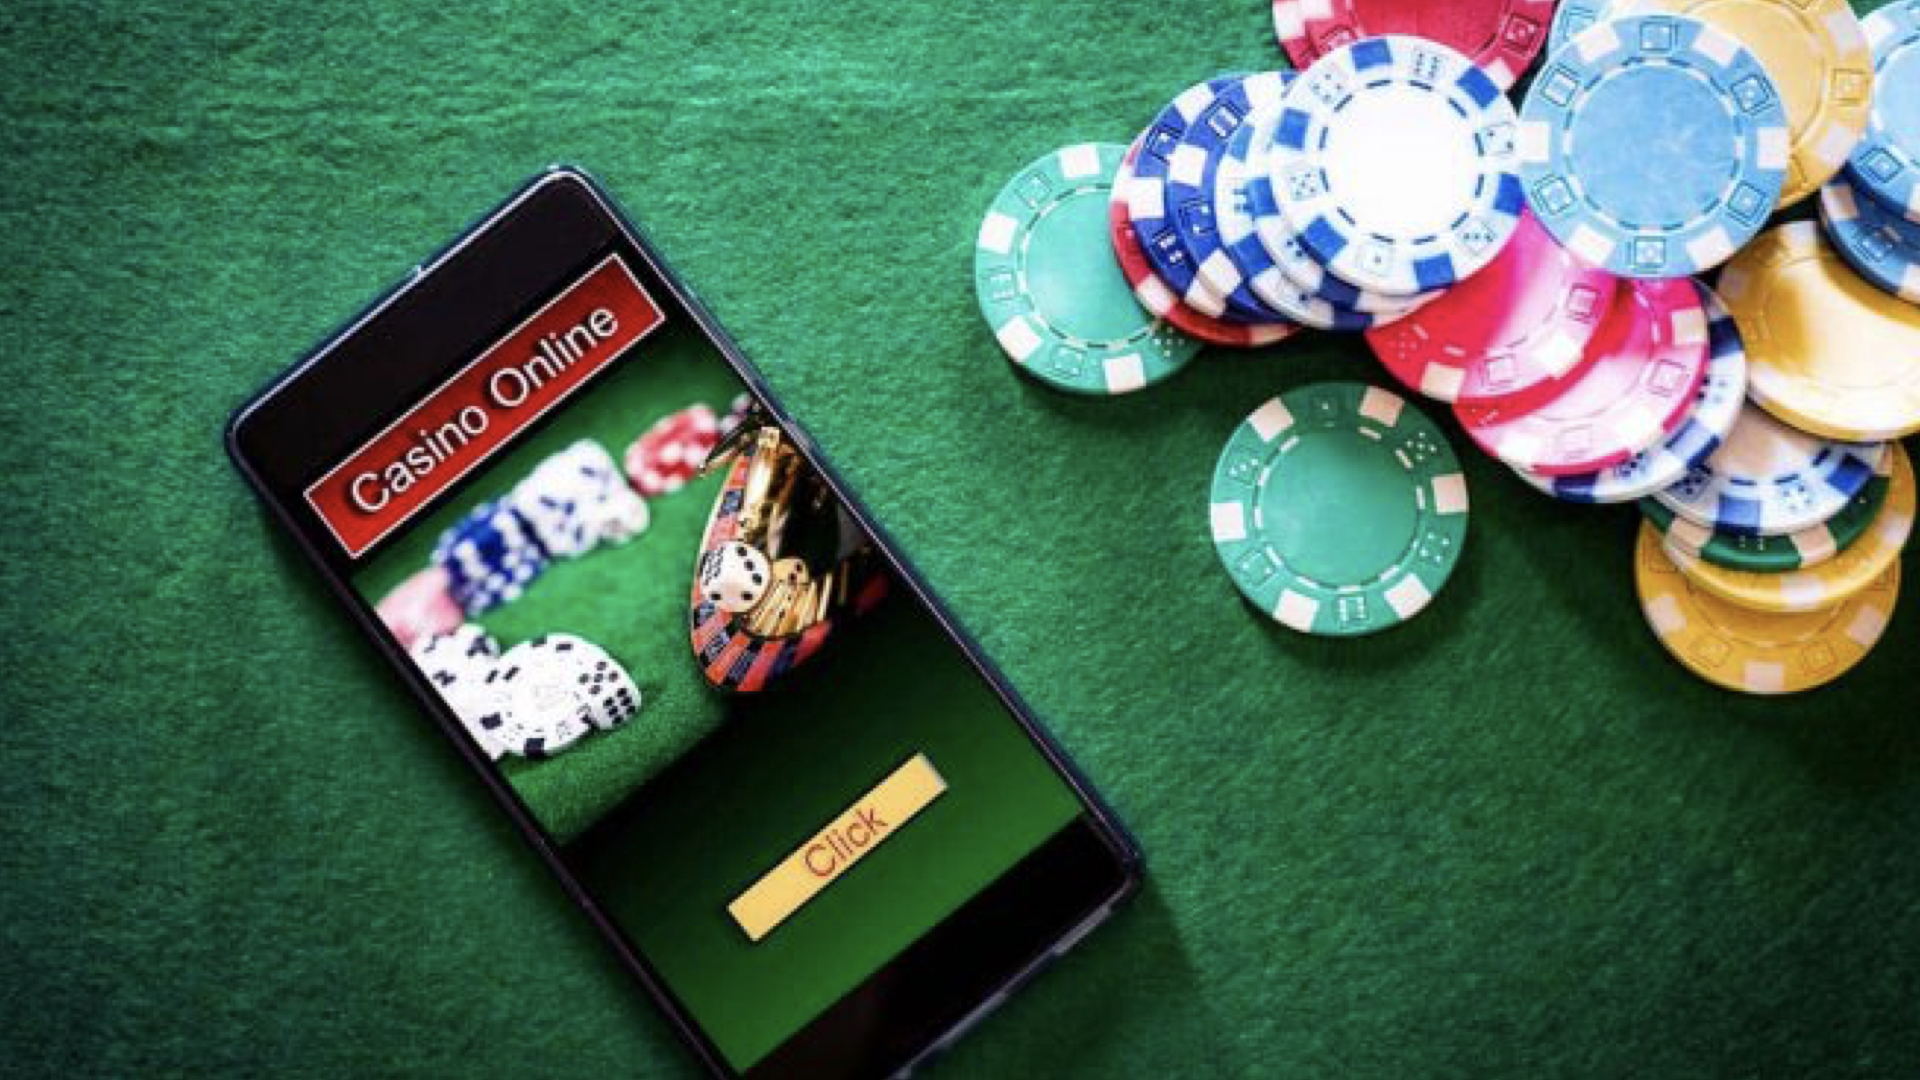 What are the advantages of the Internet on life in general and gambling